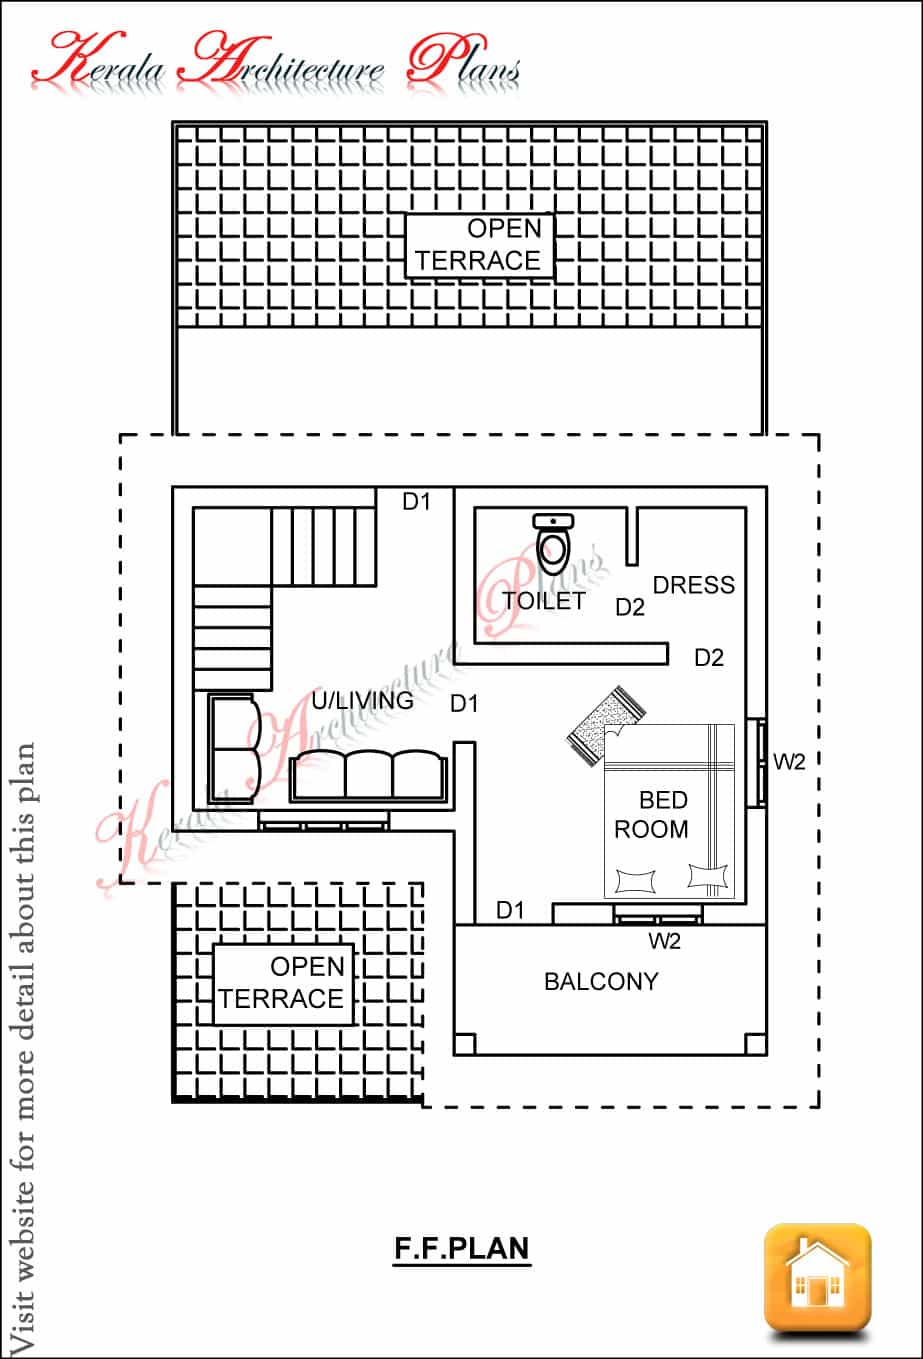 kerala house plans 1200 sq ft with photos khp ForKerala House Plans 1200 Sq Ft